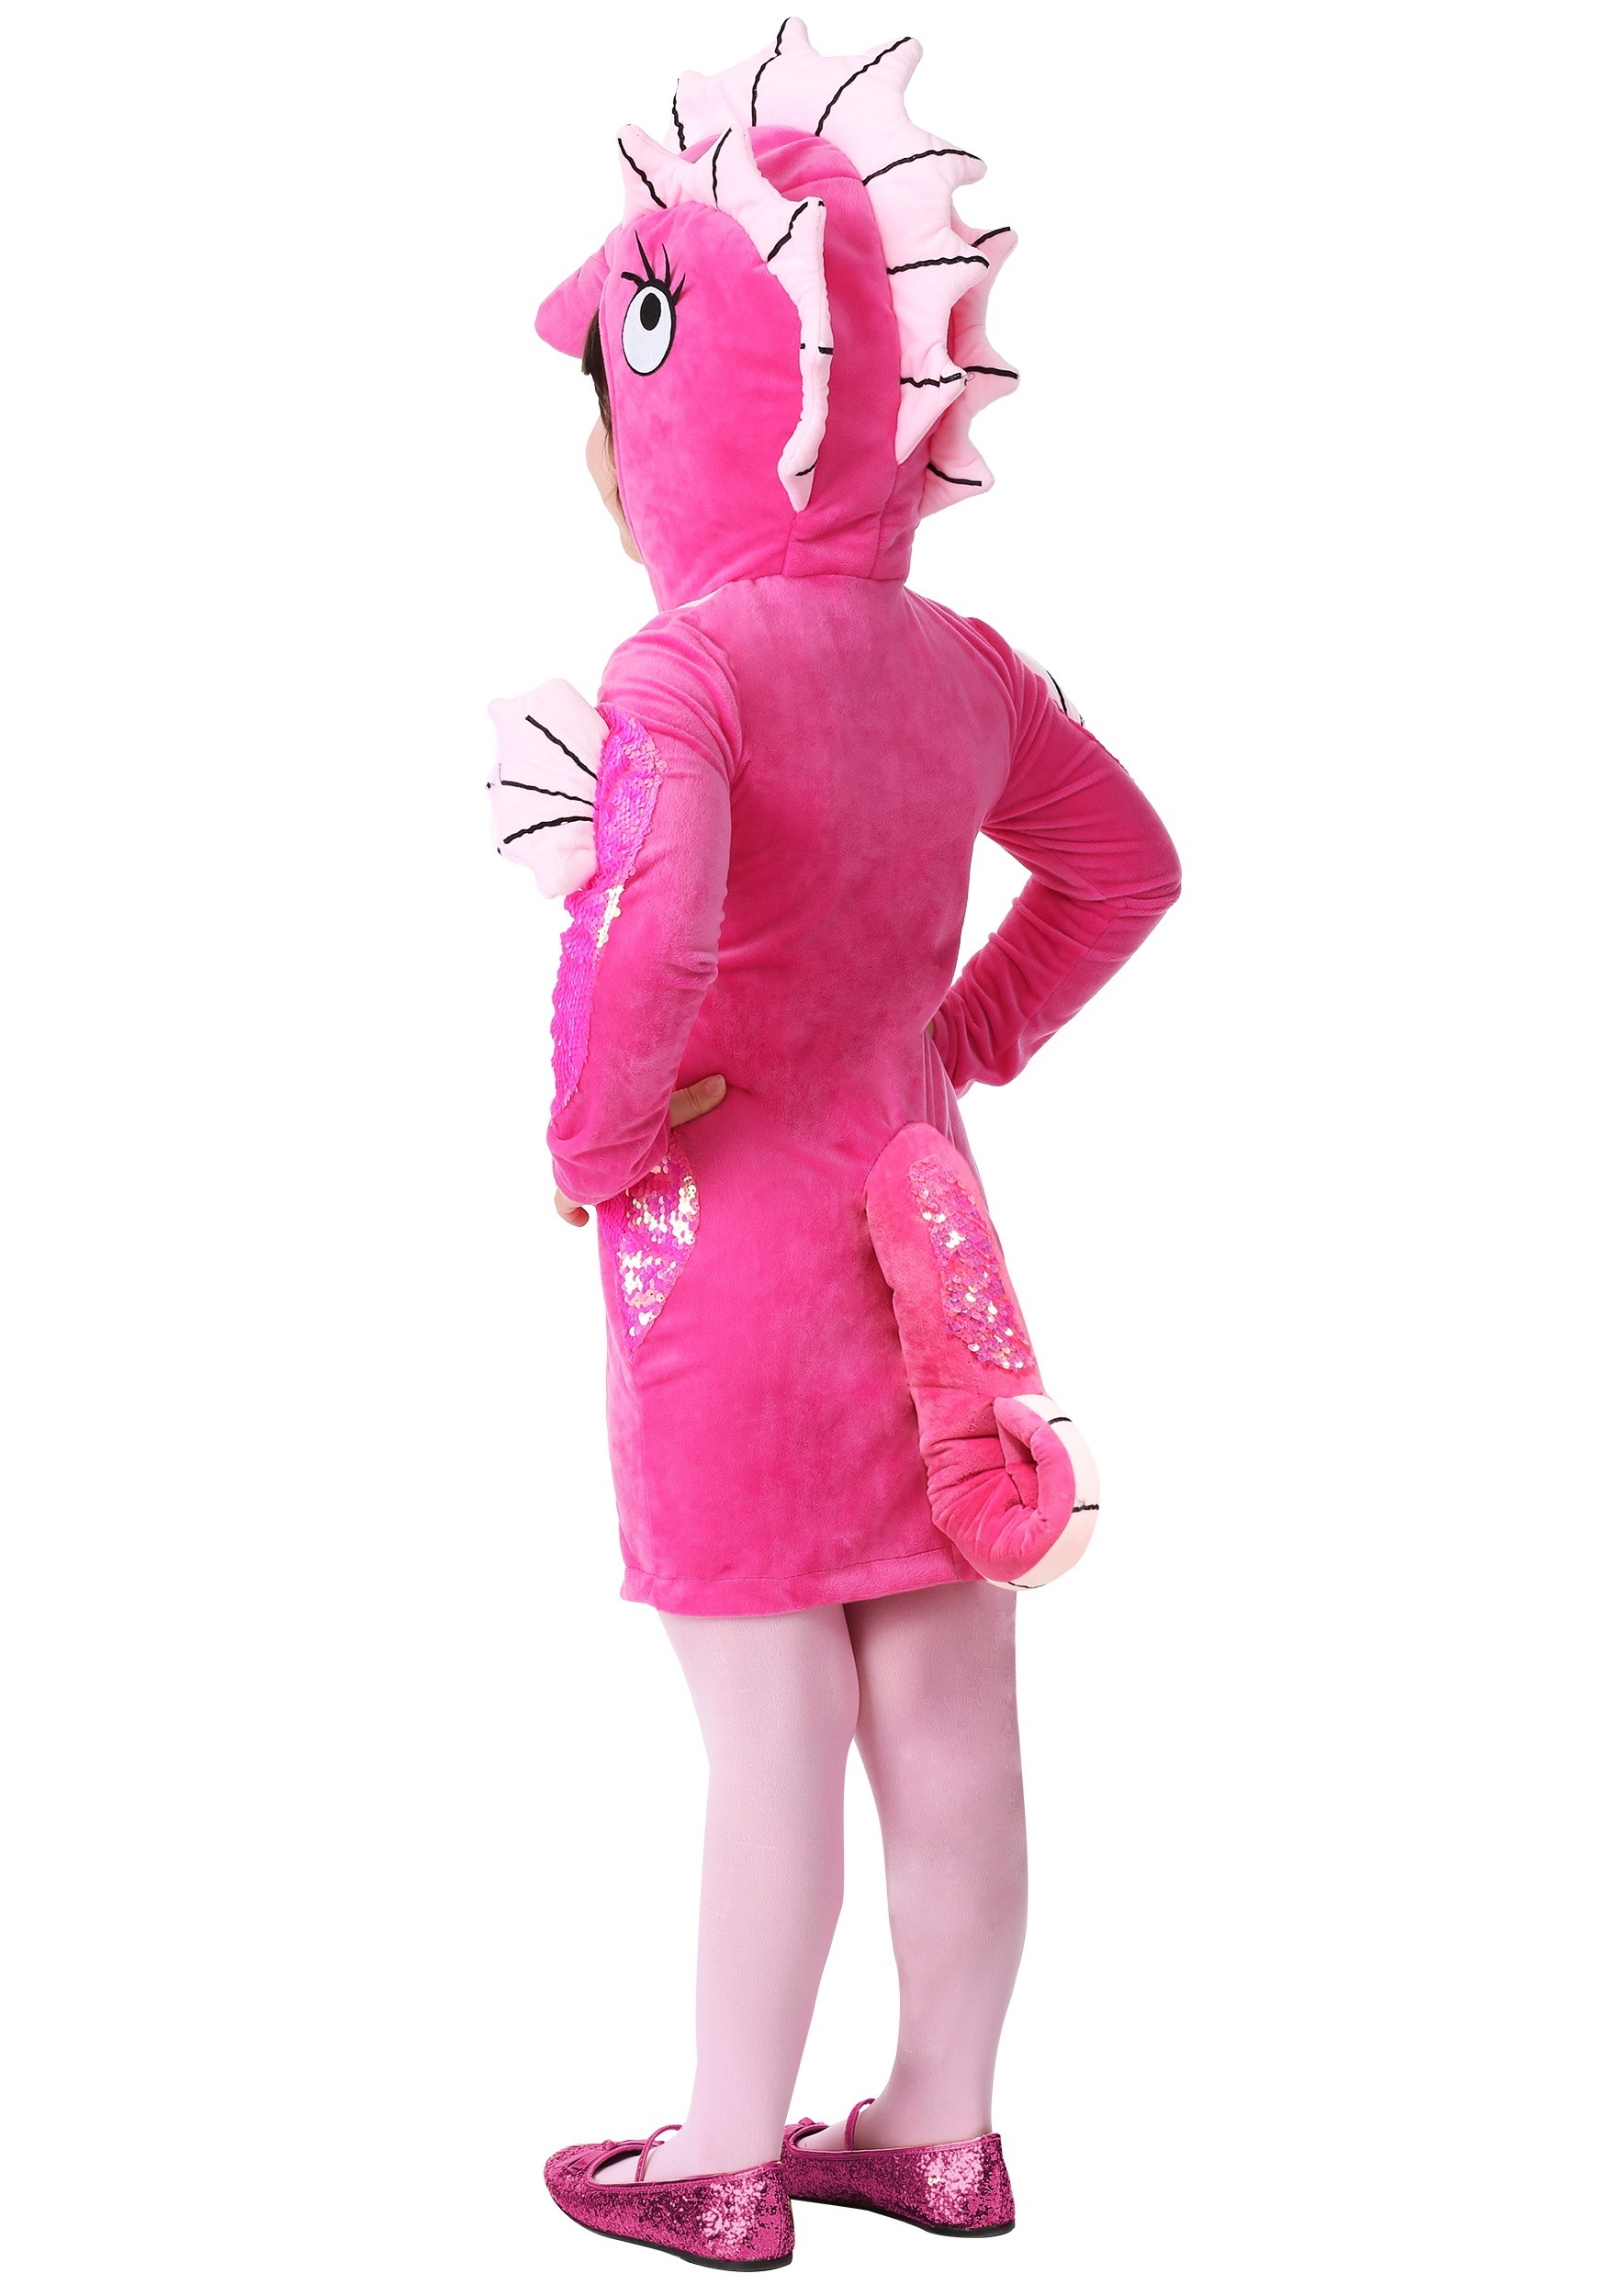 01dcaf0dc81 Toddler Girl s Seahorse Costume1 Toddler Girl s Seahorse Costume2